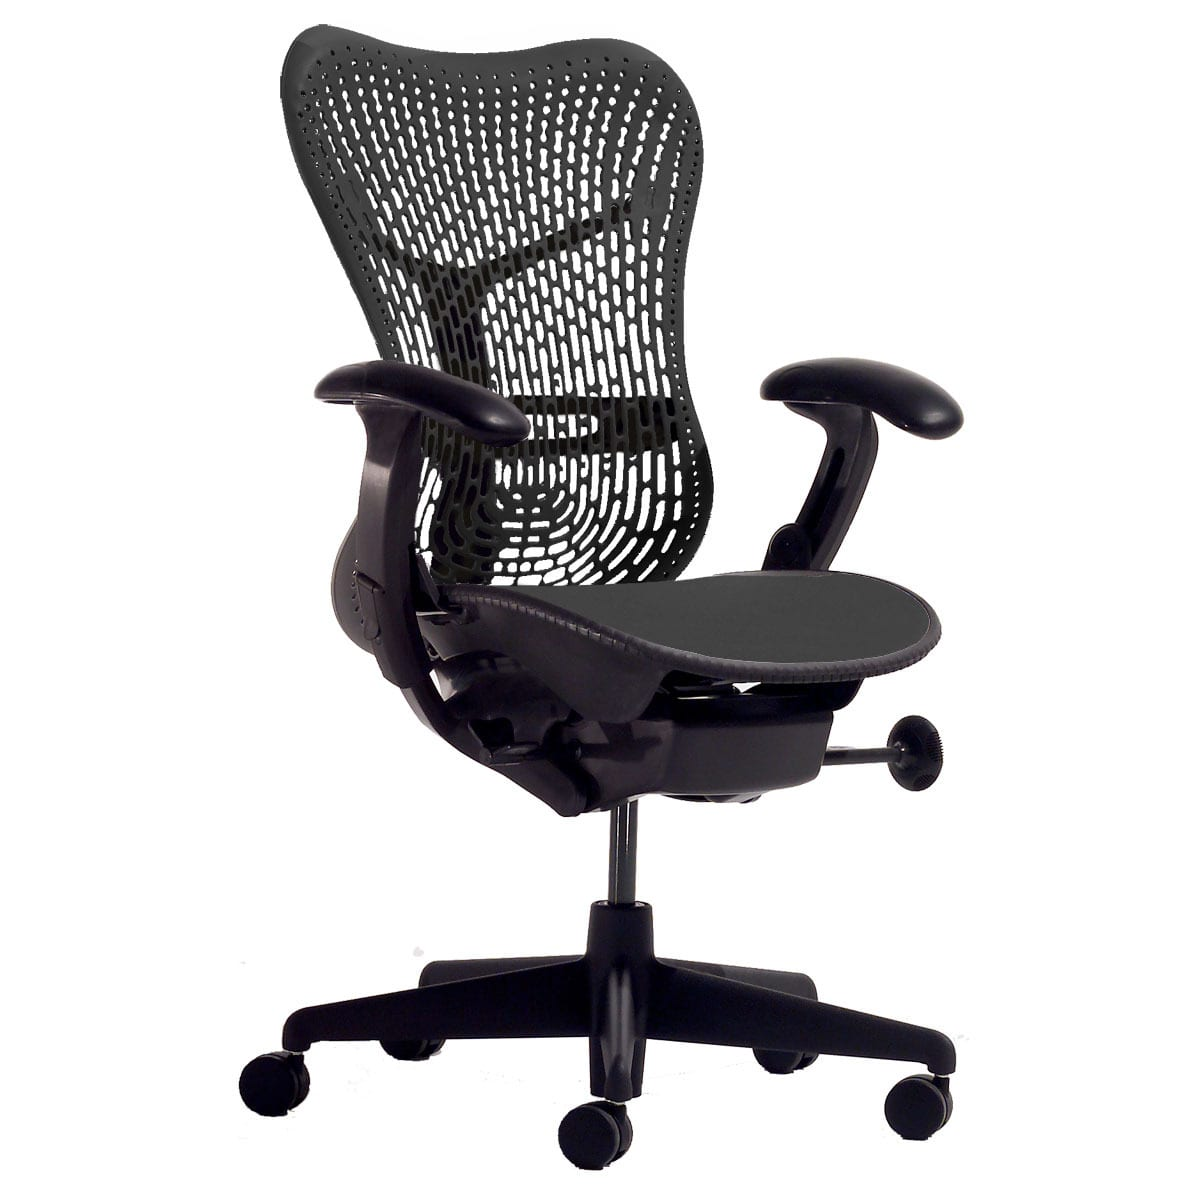 Office Chairs The World 39s Top Ten Best Office Chairs Office Furniture News